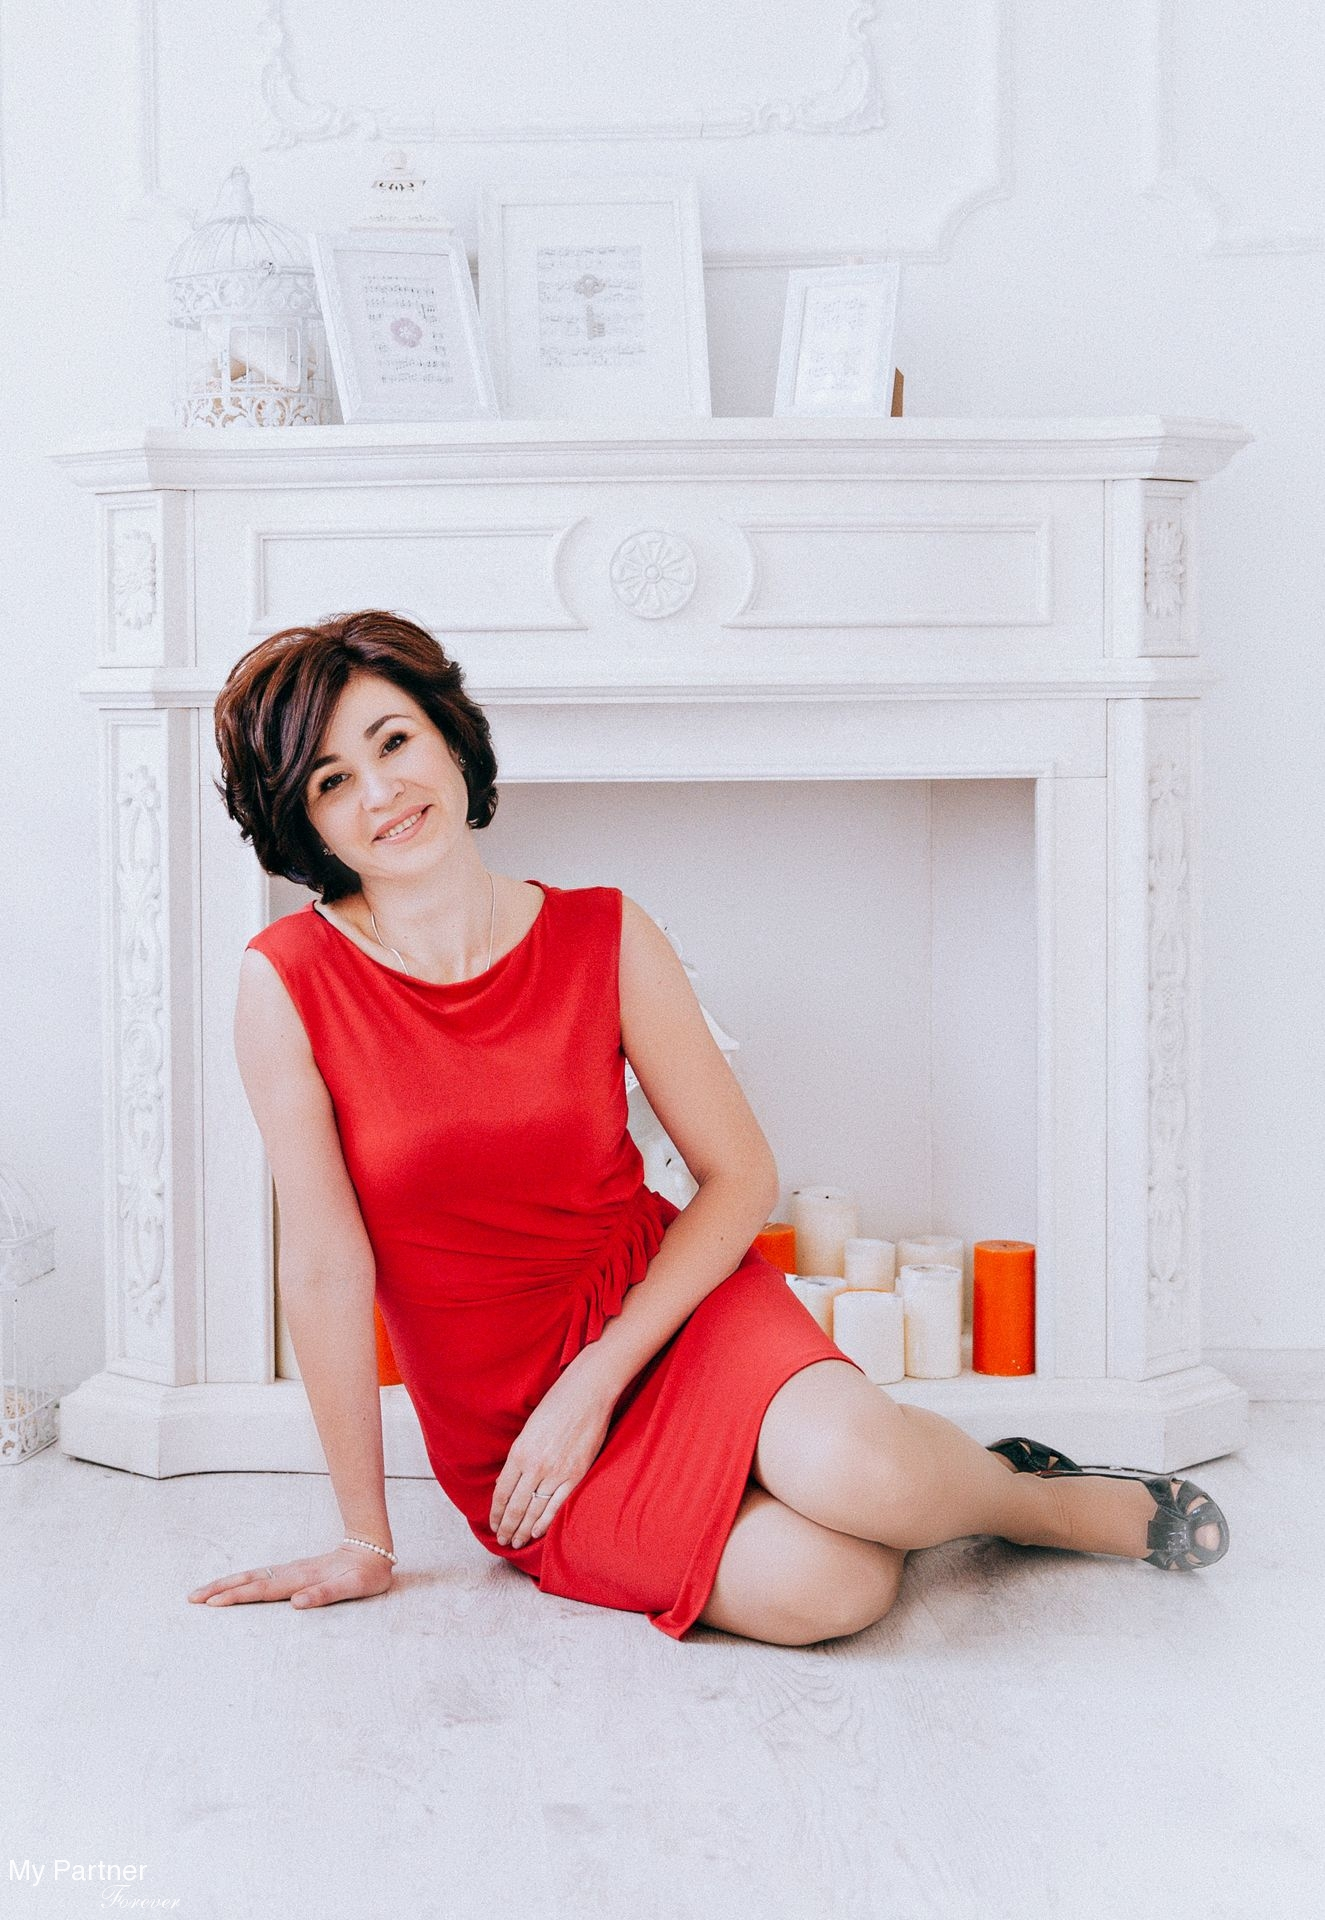 olga single girls Russian dating - browse 1000s of single russian women interested in dating at russiancupidcom for free - join today.